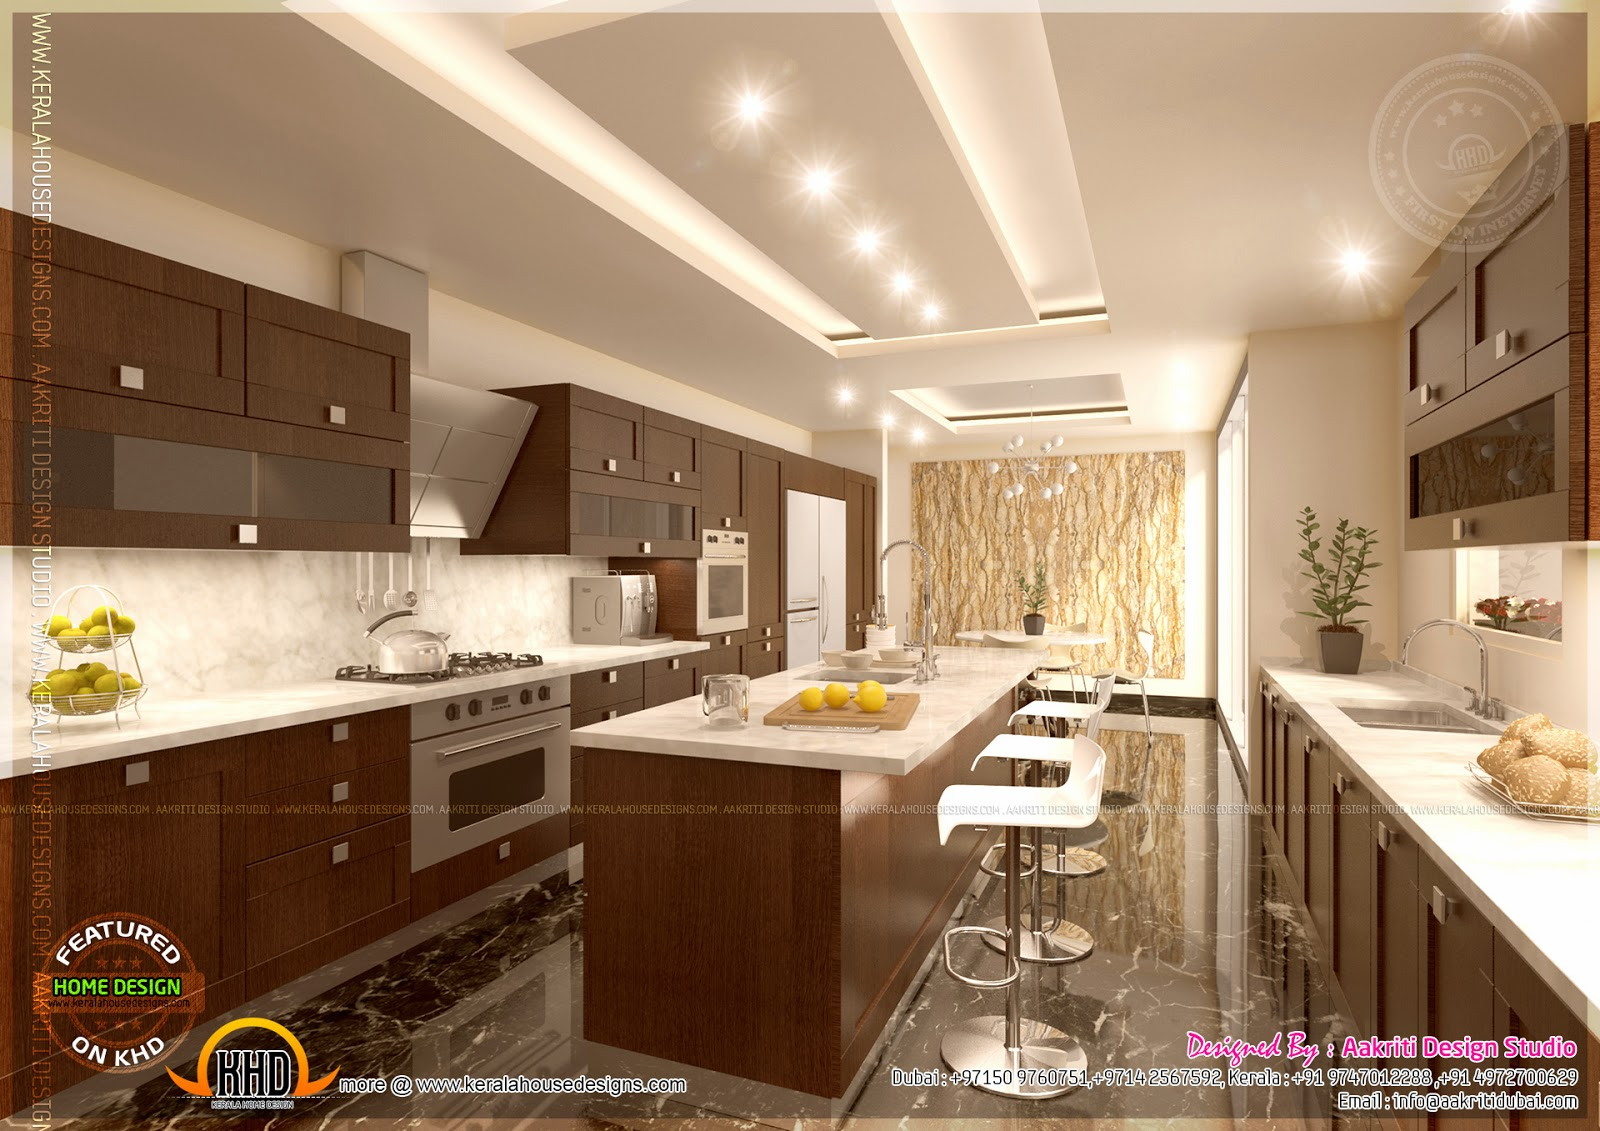 Kitchen designs by aakriti design studio kerala home for Kitchen designs kerala